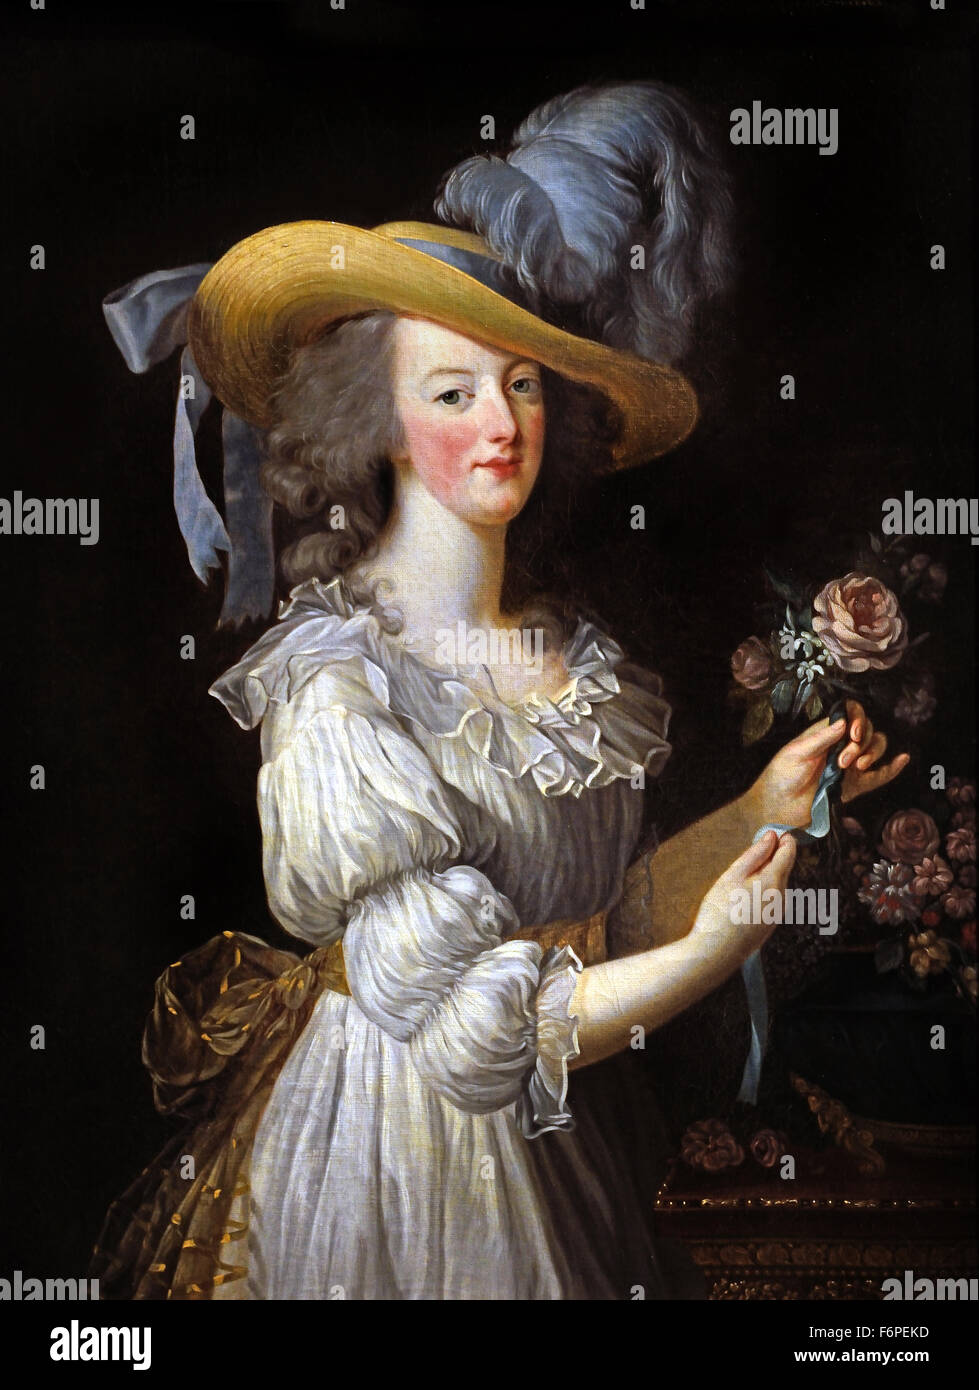 Pictures of marie antoinette beheaded What were the main reasons behind the beheading of Marie